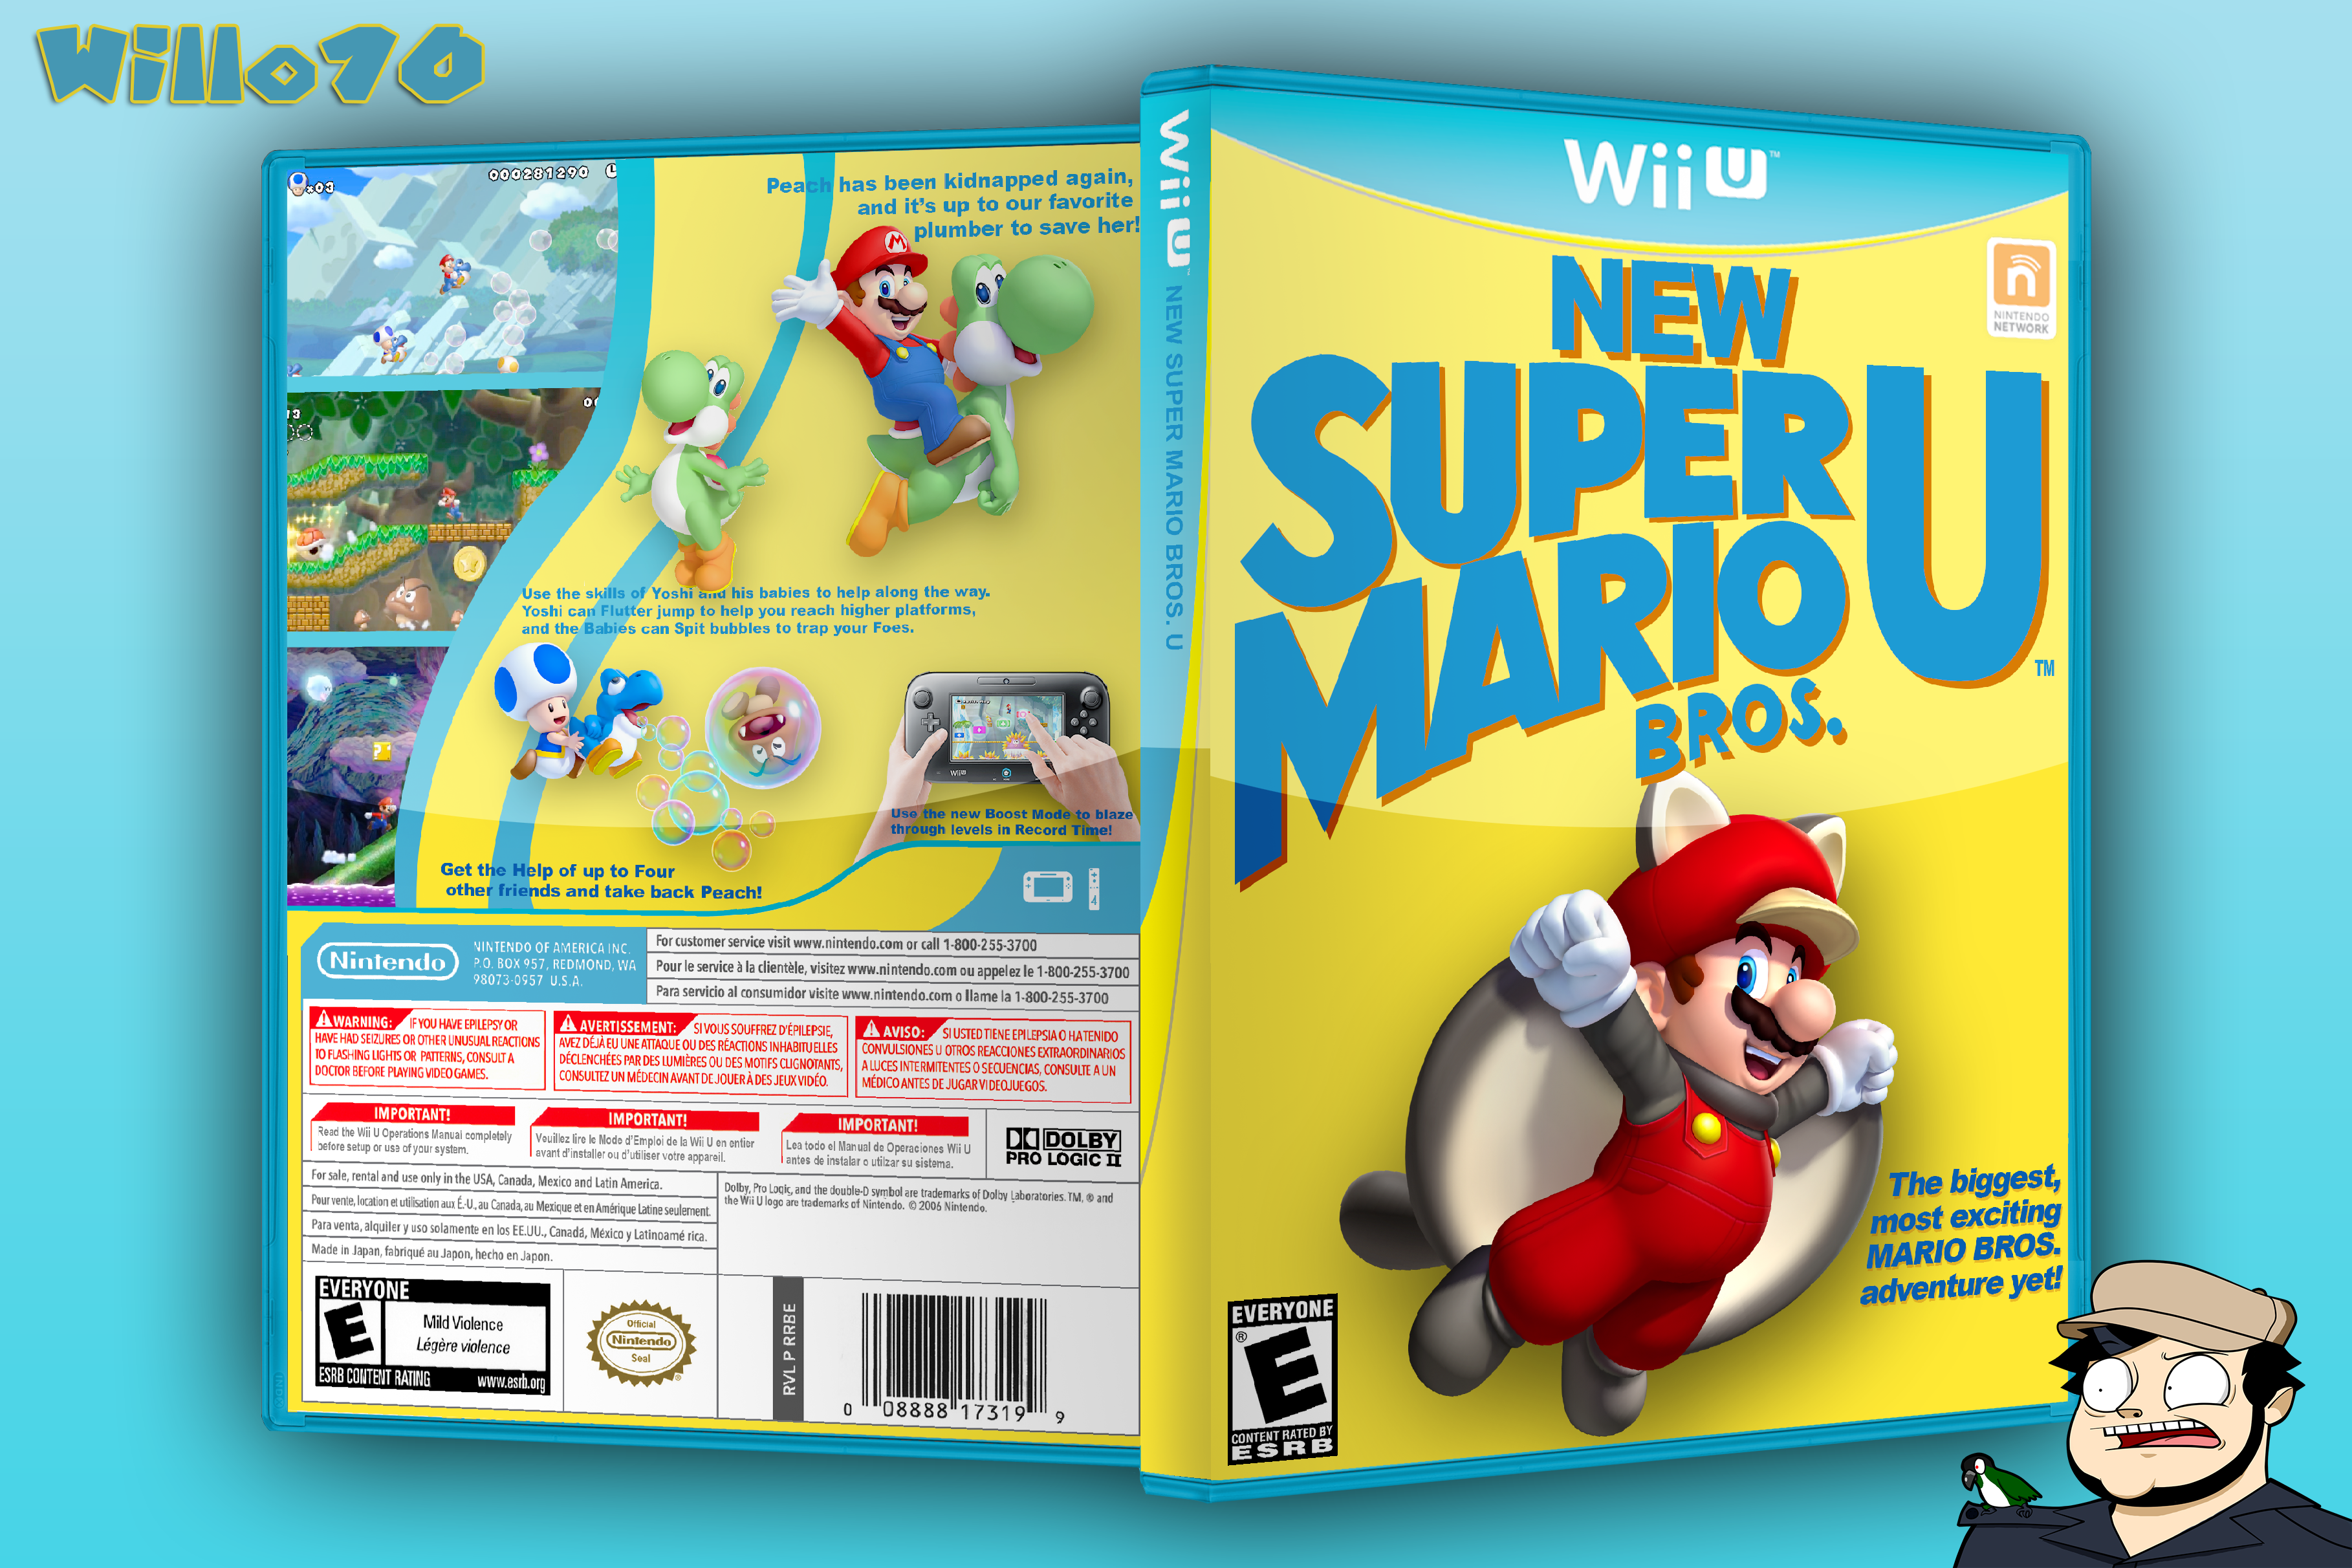 Mario Wii U Games : New super mario bros u wii box art cover by willo